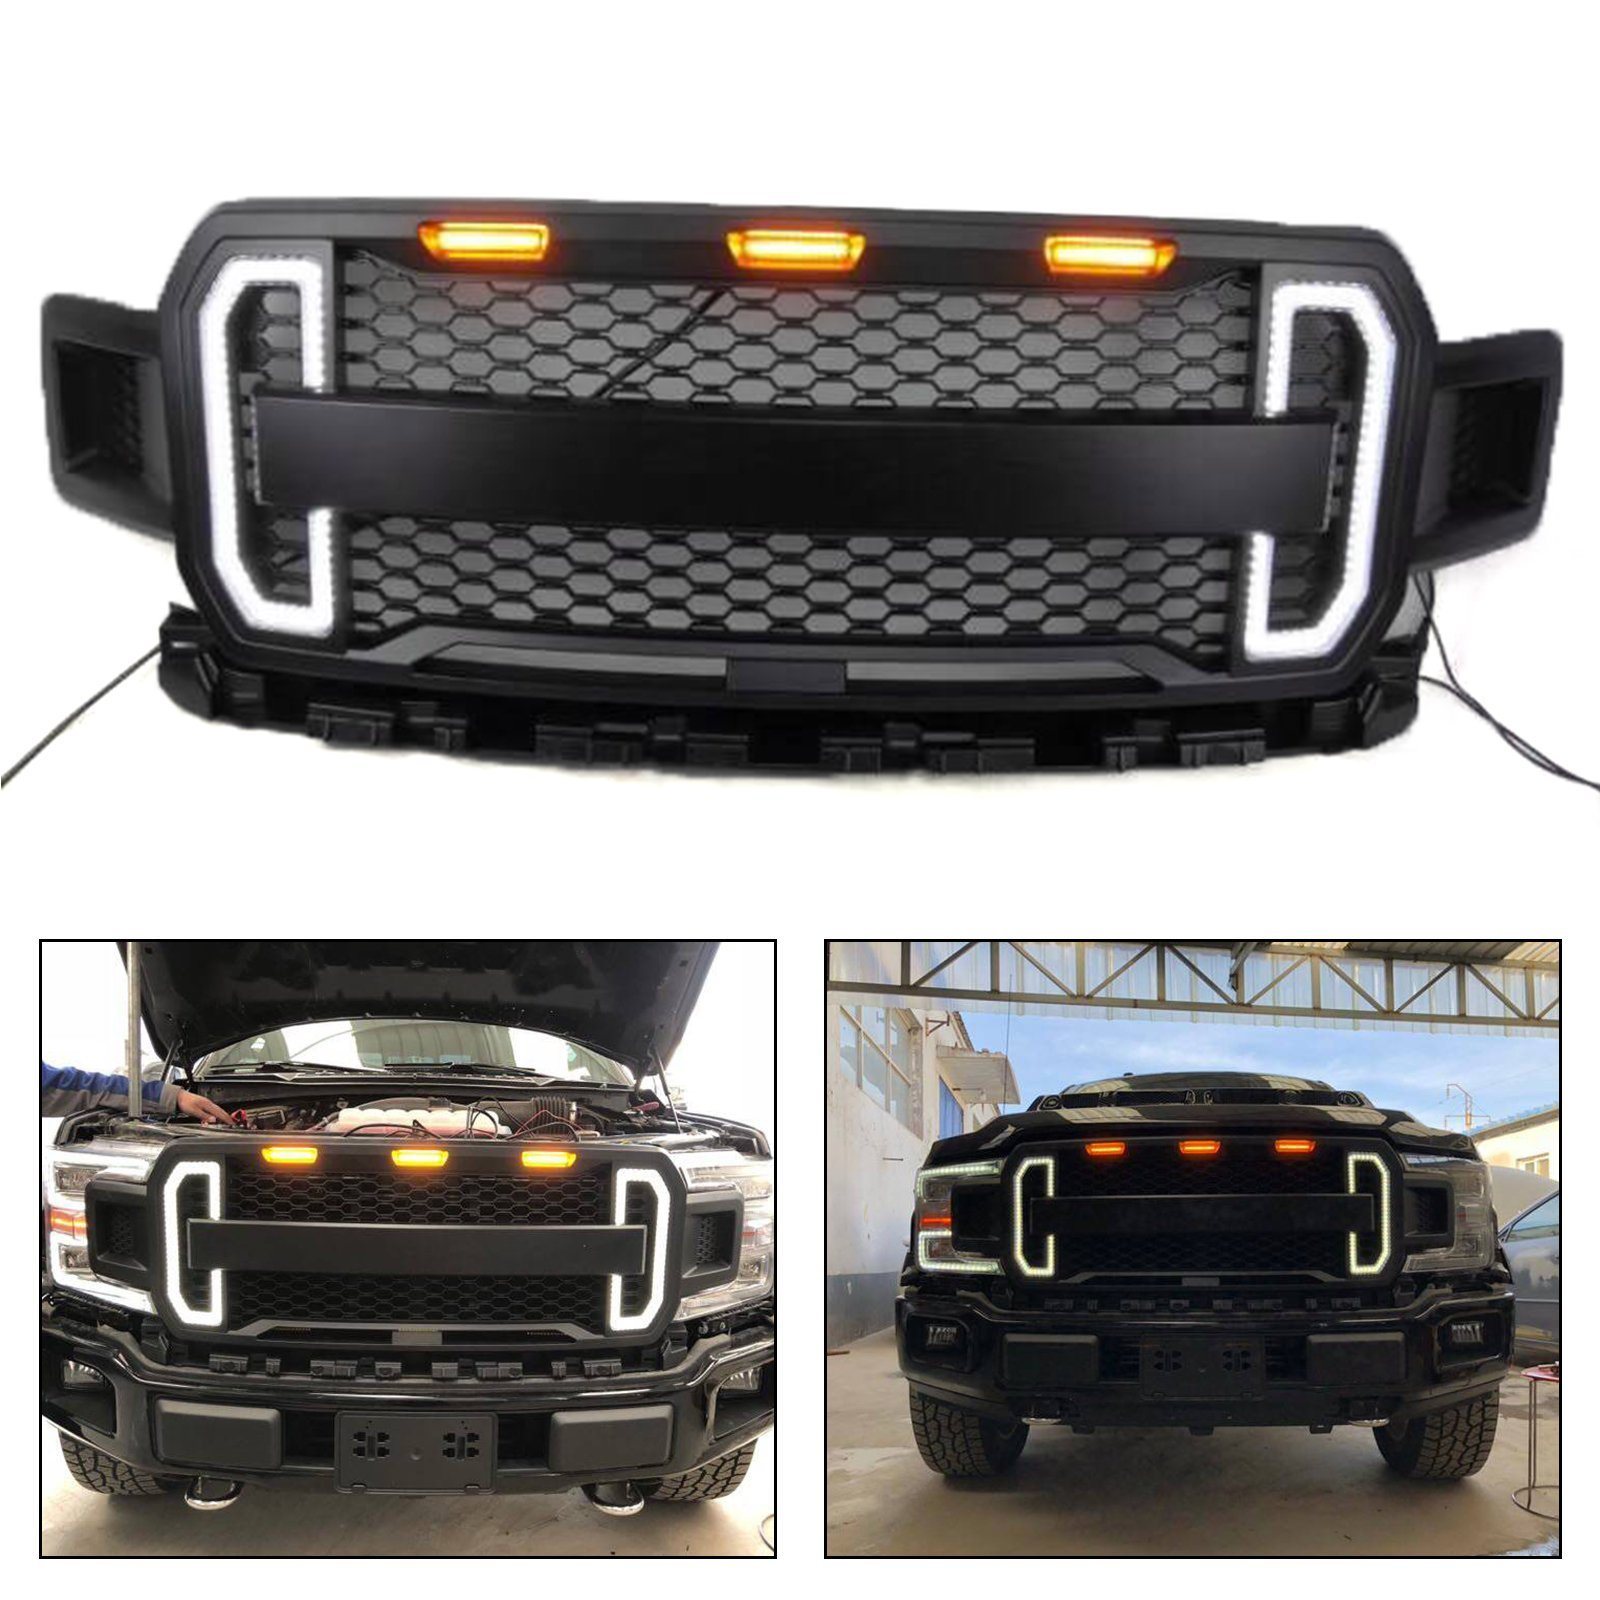 China Dongsui 4x4 Car Front Grill With Led Light Truck Accessories For Ford F150 China Front Bumper Grille Car Grills